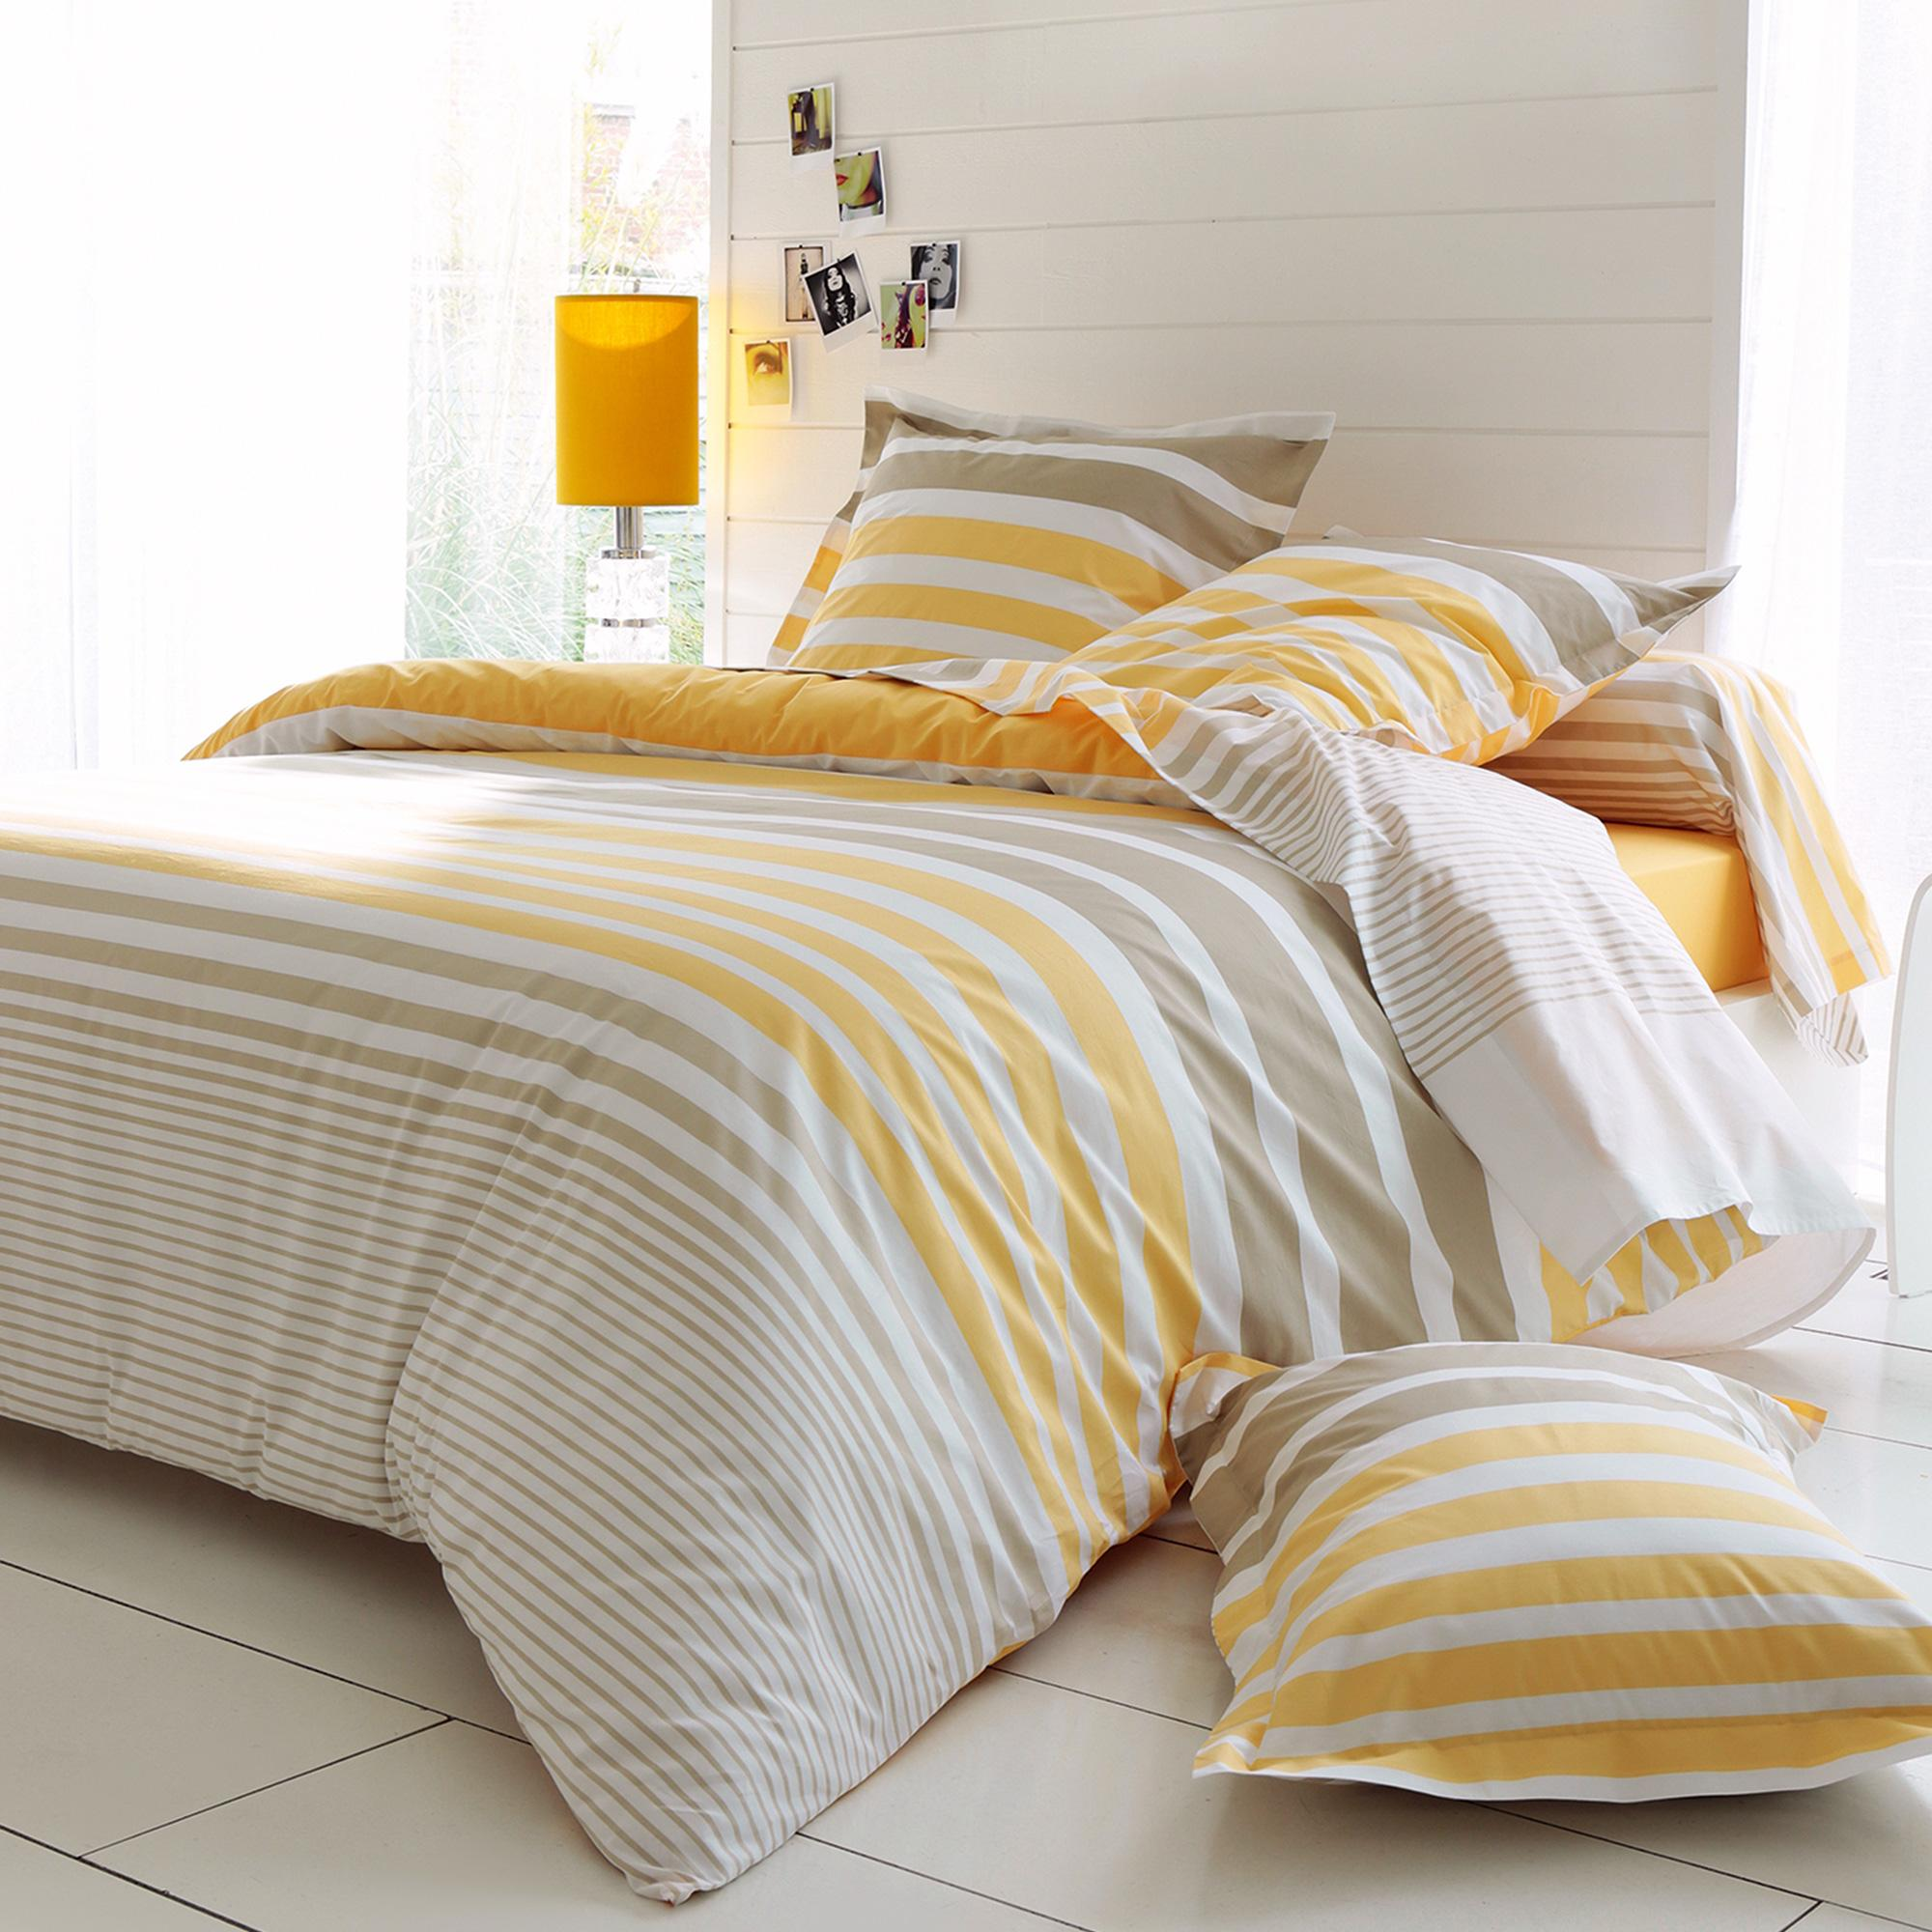 housse de couette 140x200 percale pur coton stripe narcisse jaune ebay. Black Bedroom Furniture Sets. Home Design Ideas